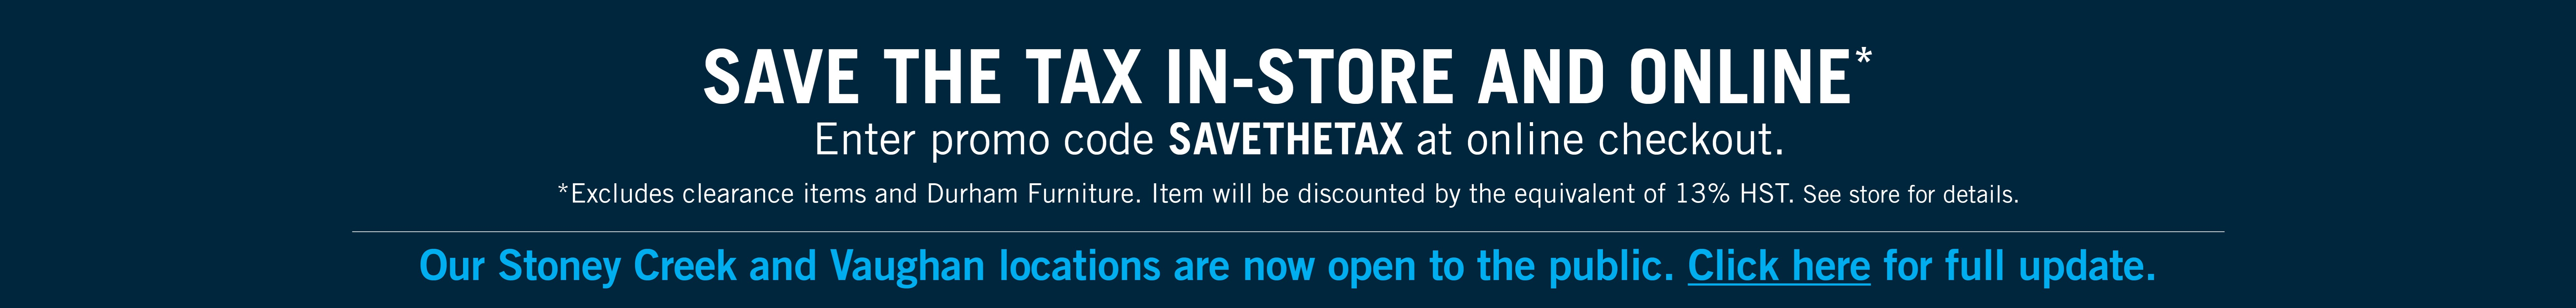 save the tax - use code savethetax at checkout